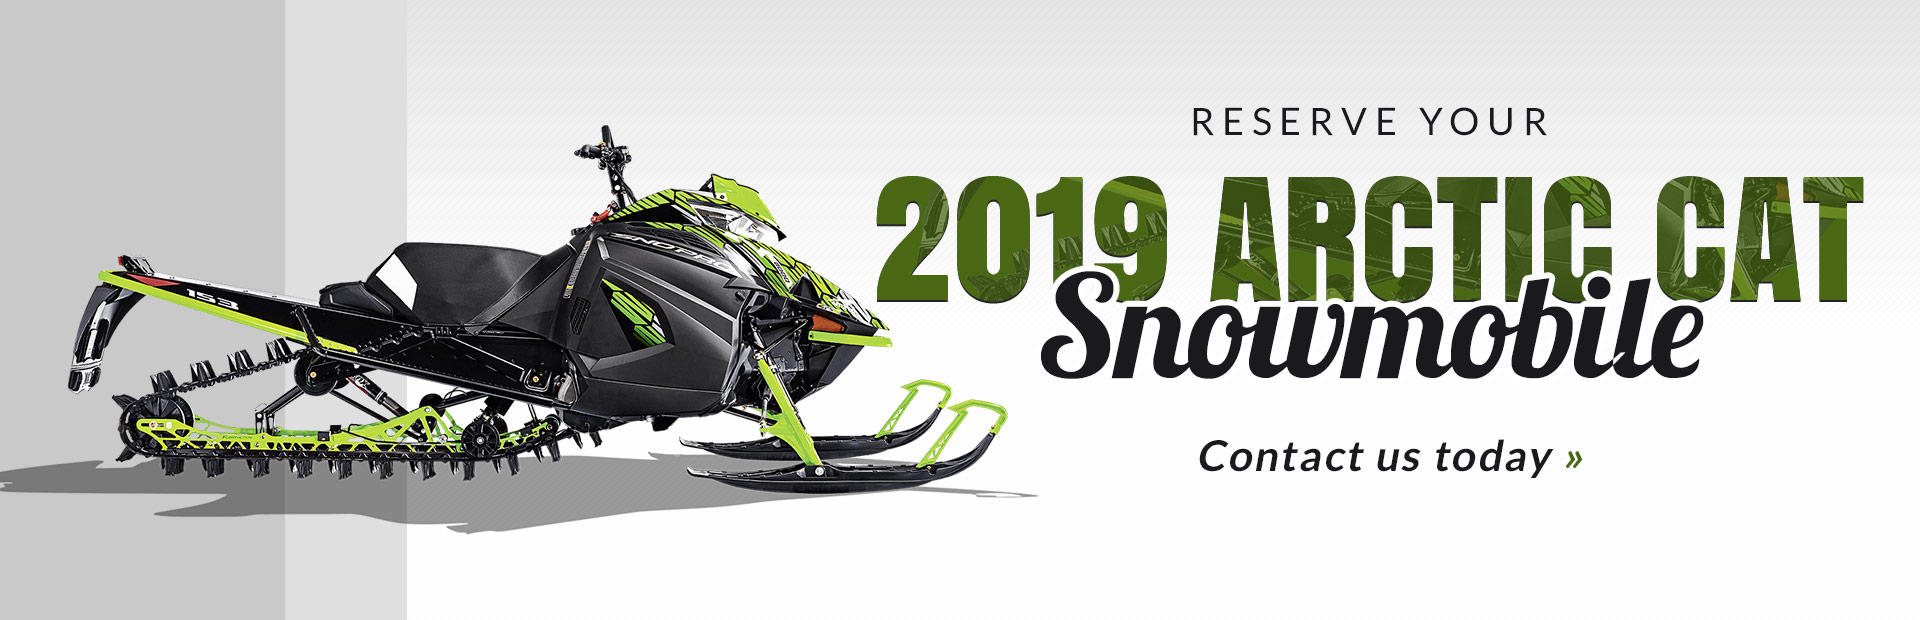 Reserve Your 2019 Arctic Cat Snowmobile